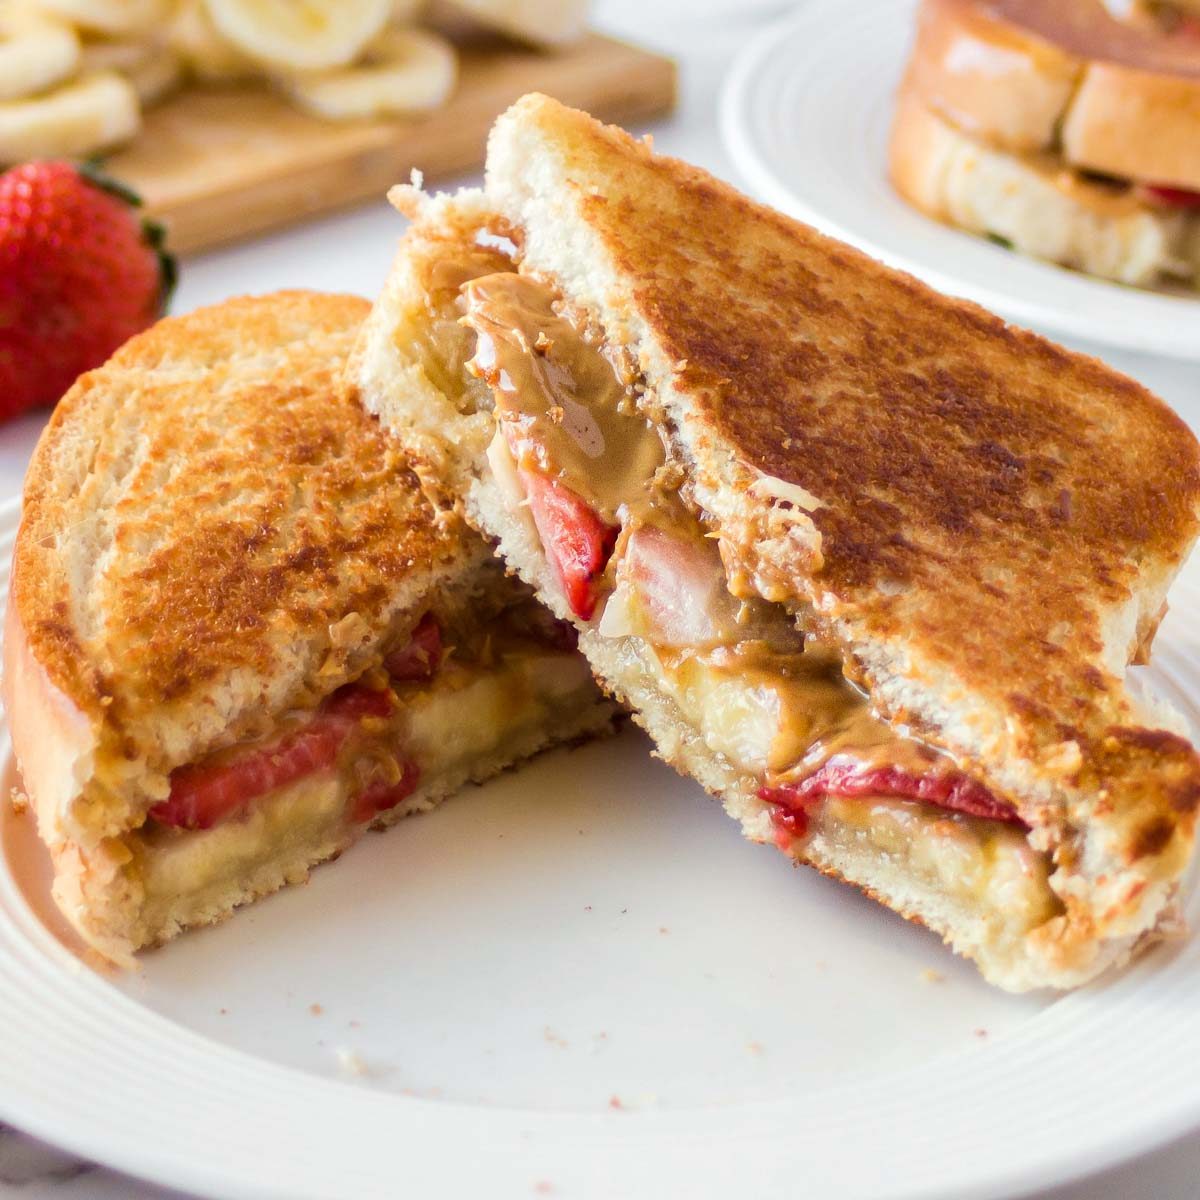 Grilled peanut butter sandwich on a plate.